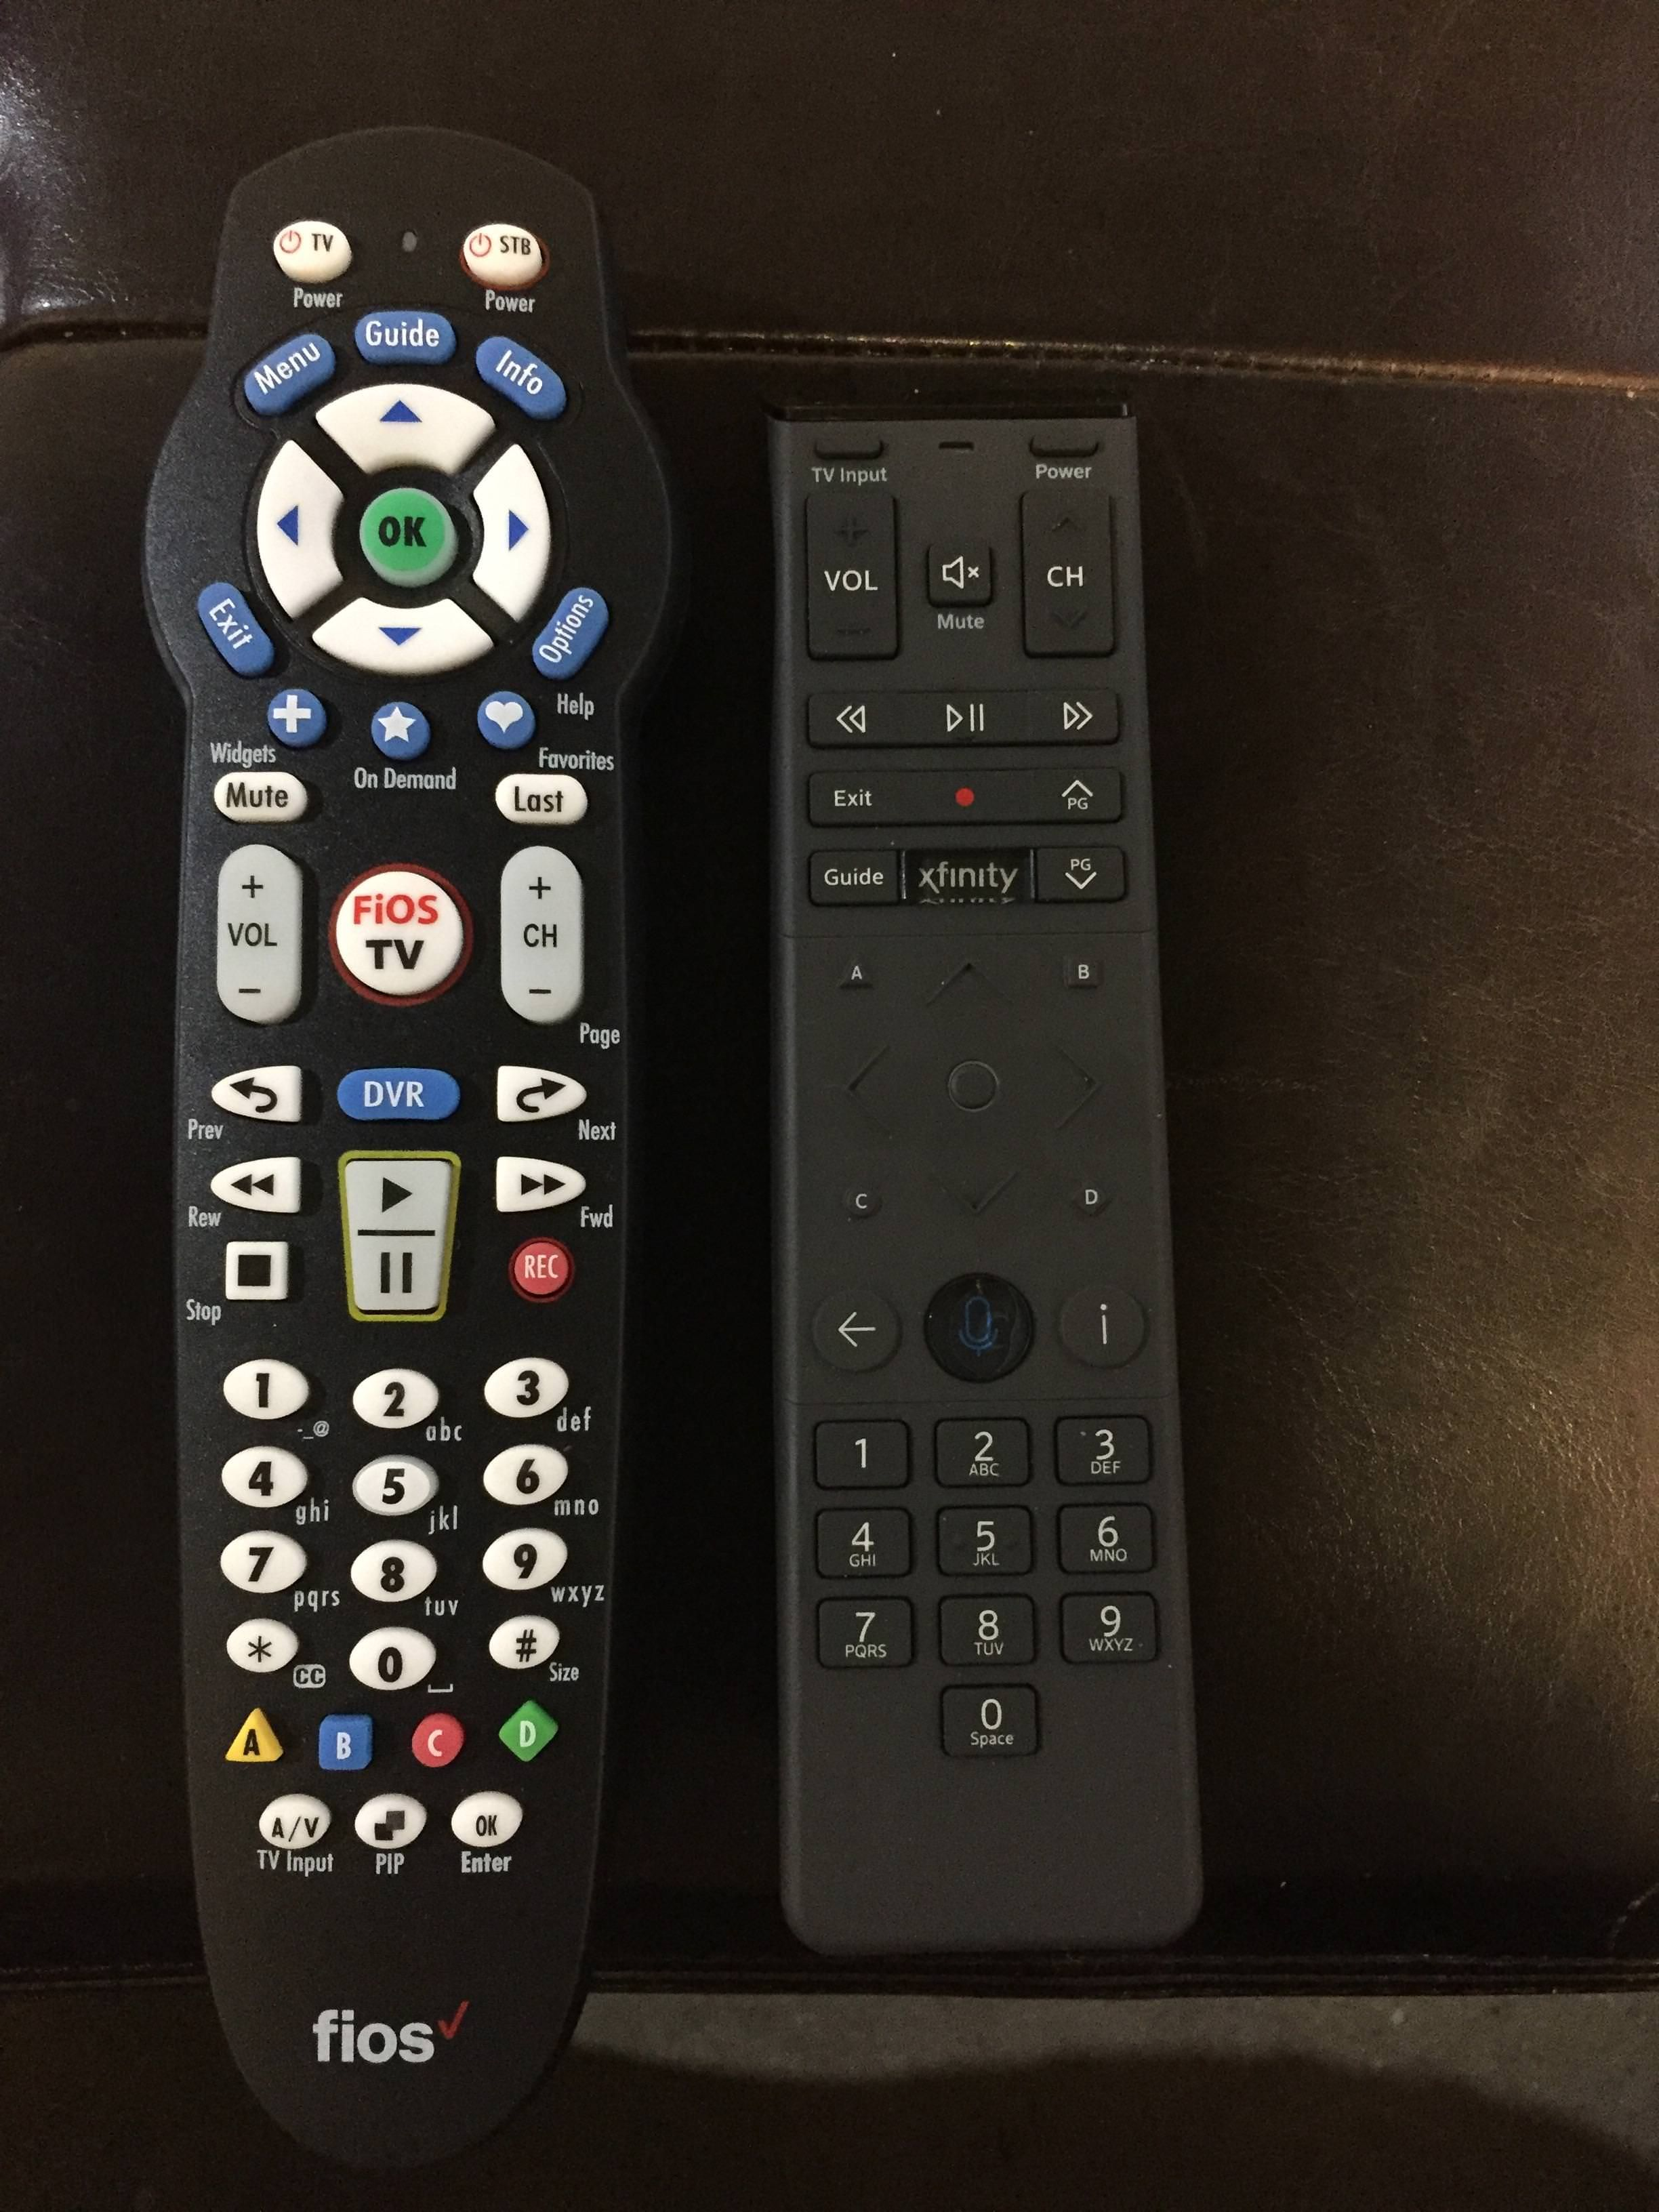 Difference between Verizon FiOS & Comcast XFinity remotes (Spring